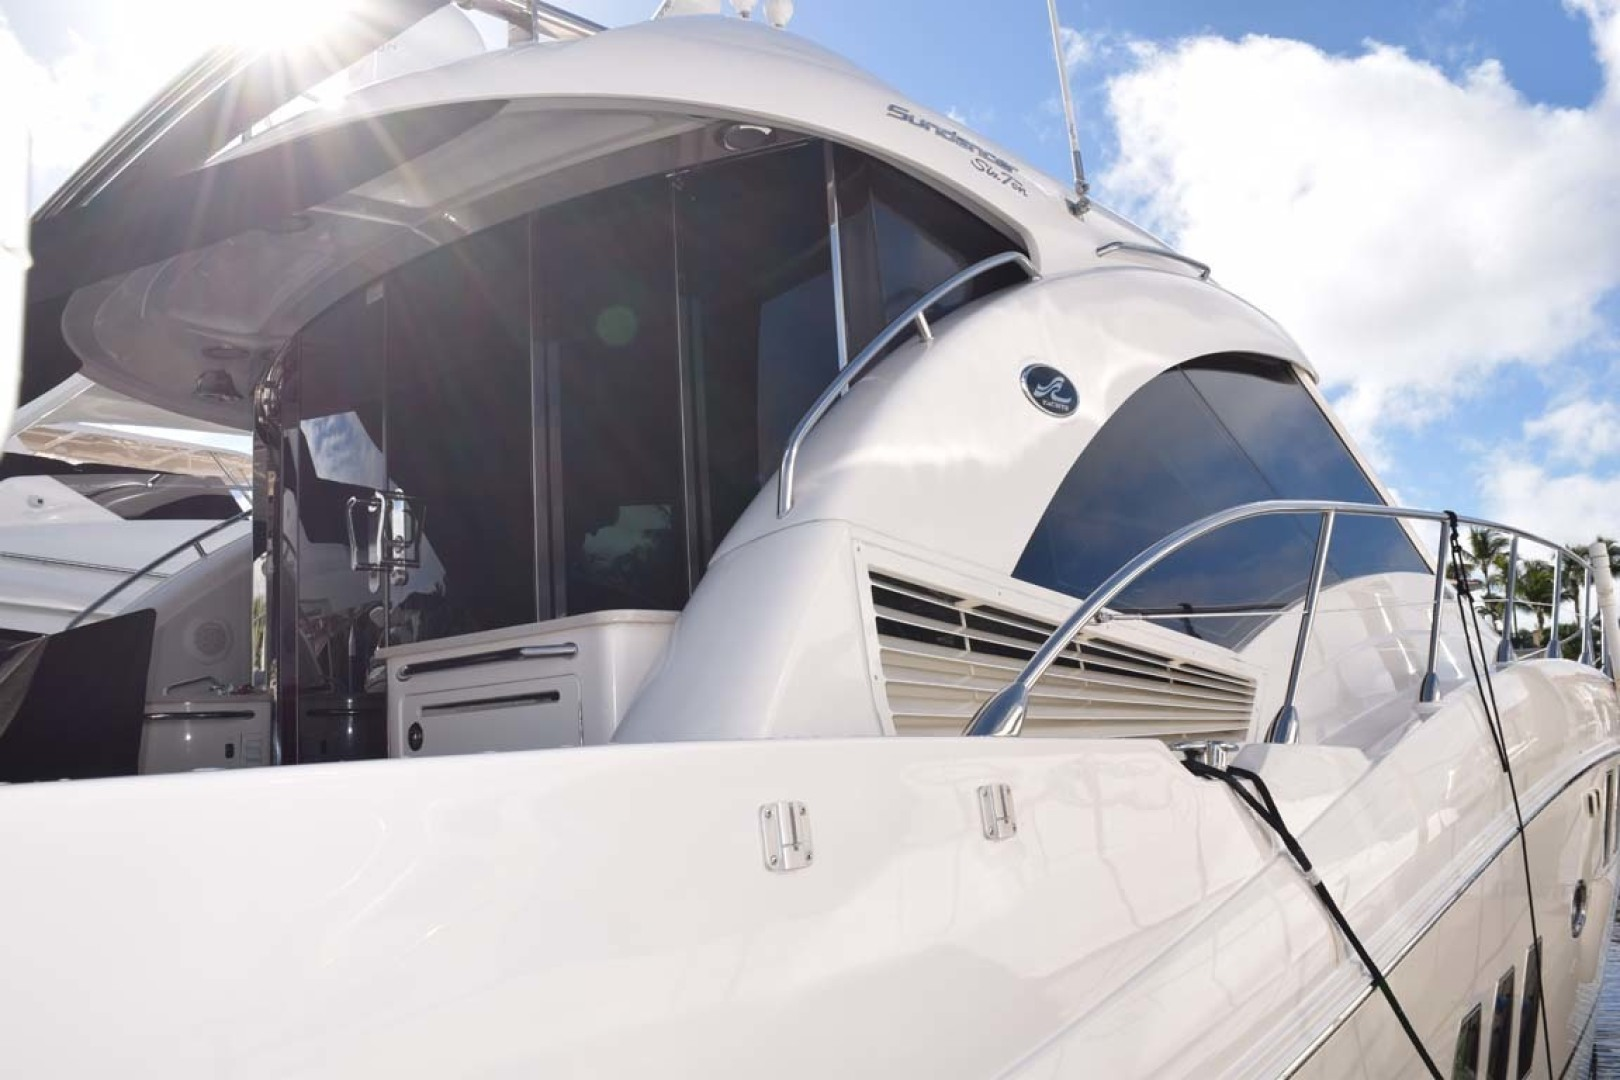 Sea Ray-Sundancer 610 2012-SON RYS Fort Myers-Florida-United States-View From Dock Of Aft Deck And Sliding Doors Into Upper Salon STBD Side-1298483 | Thumbnail